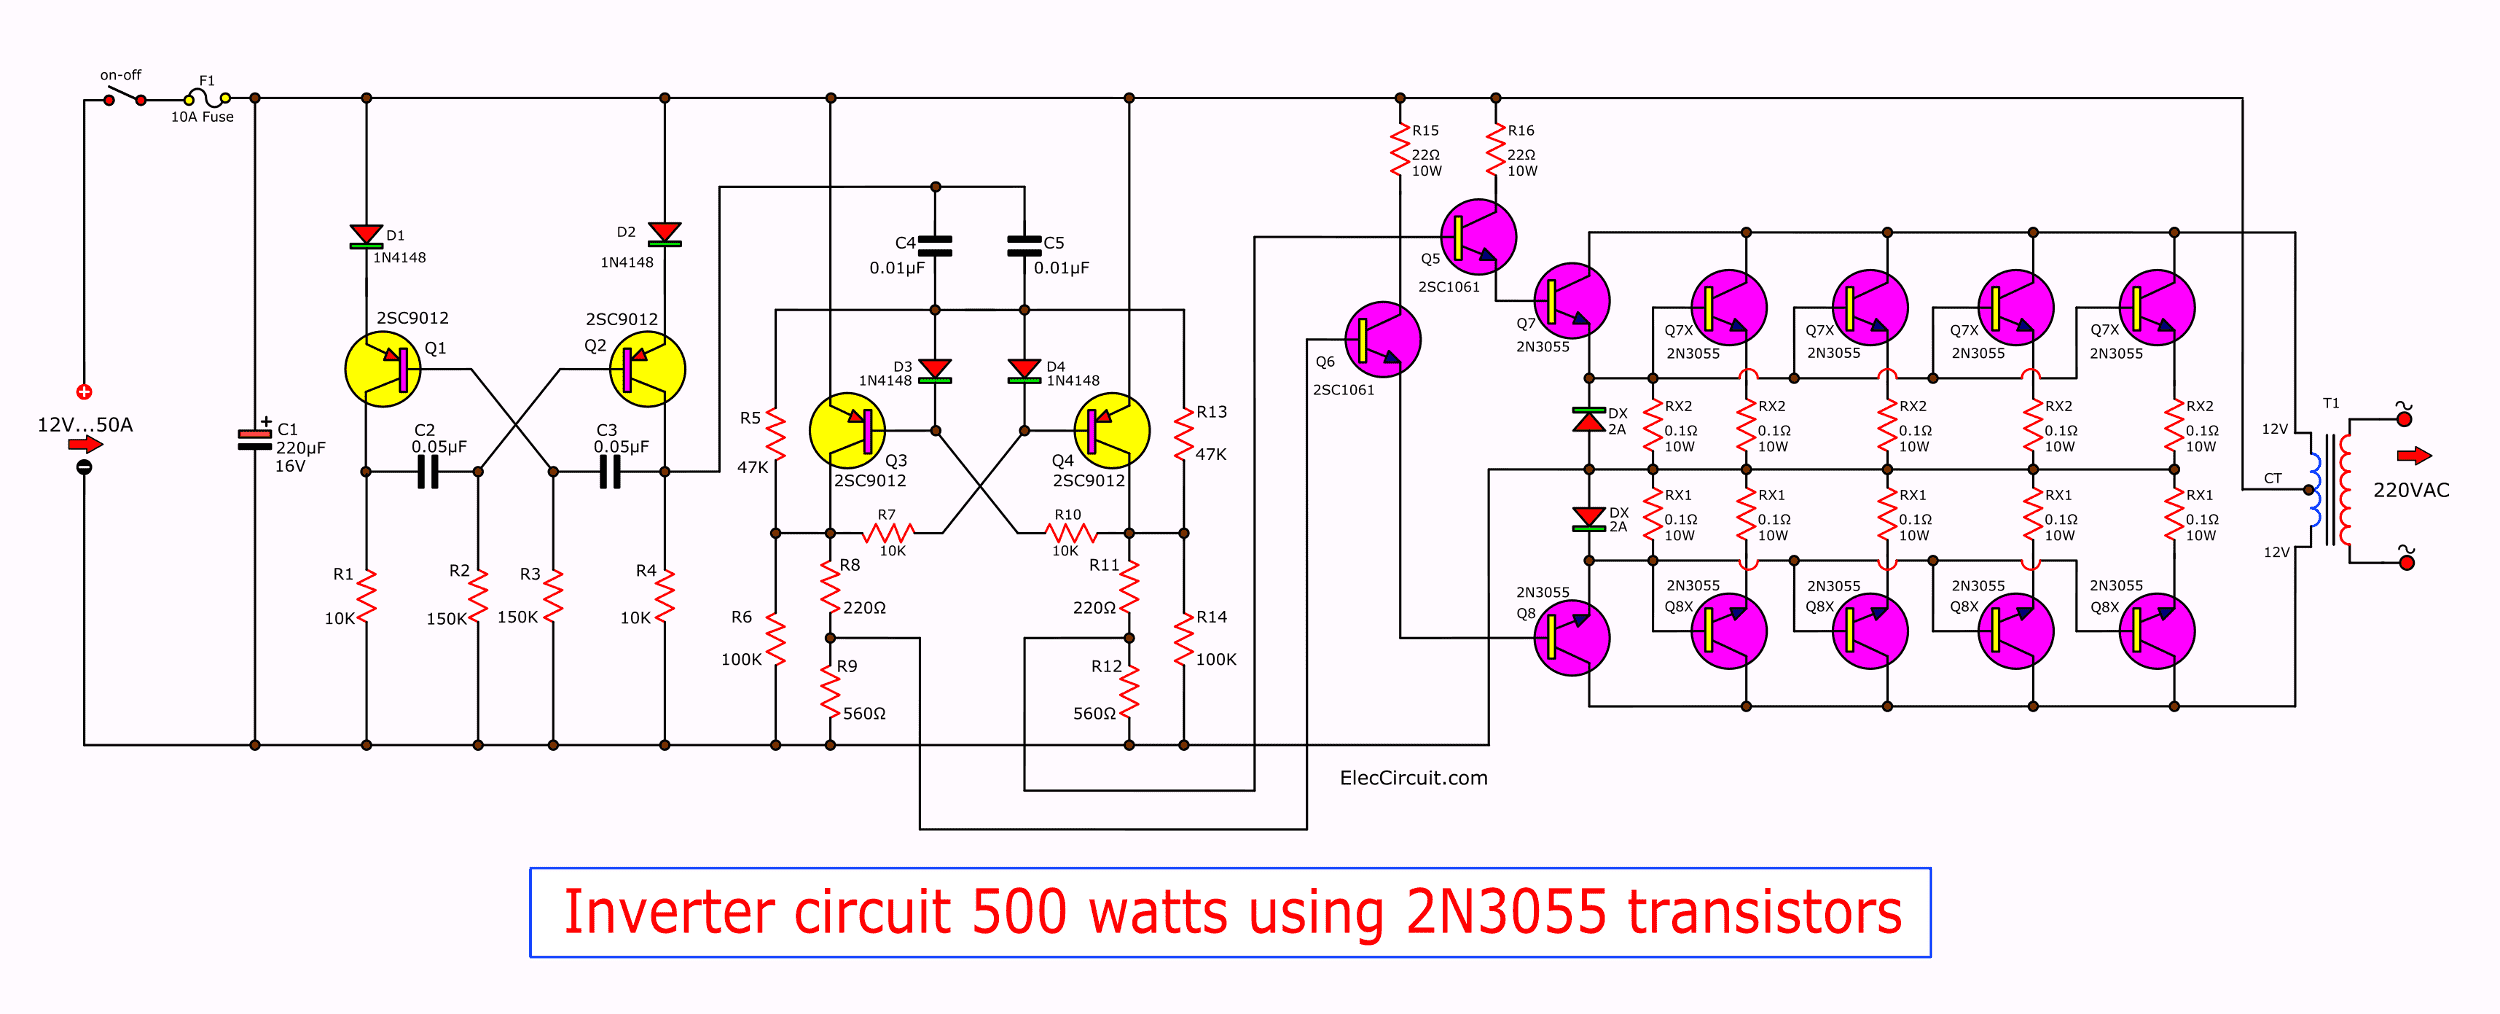 watt inverter circuit diagram on 500 watt power inverter circuit